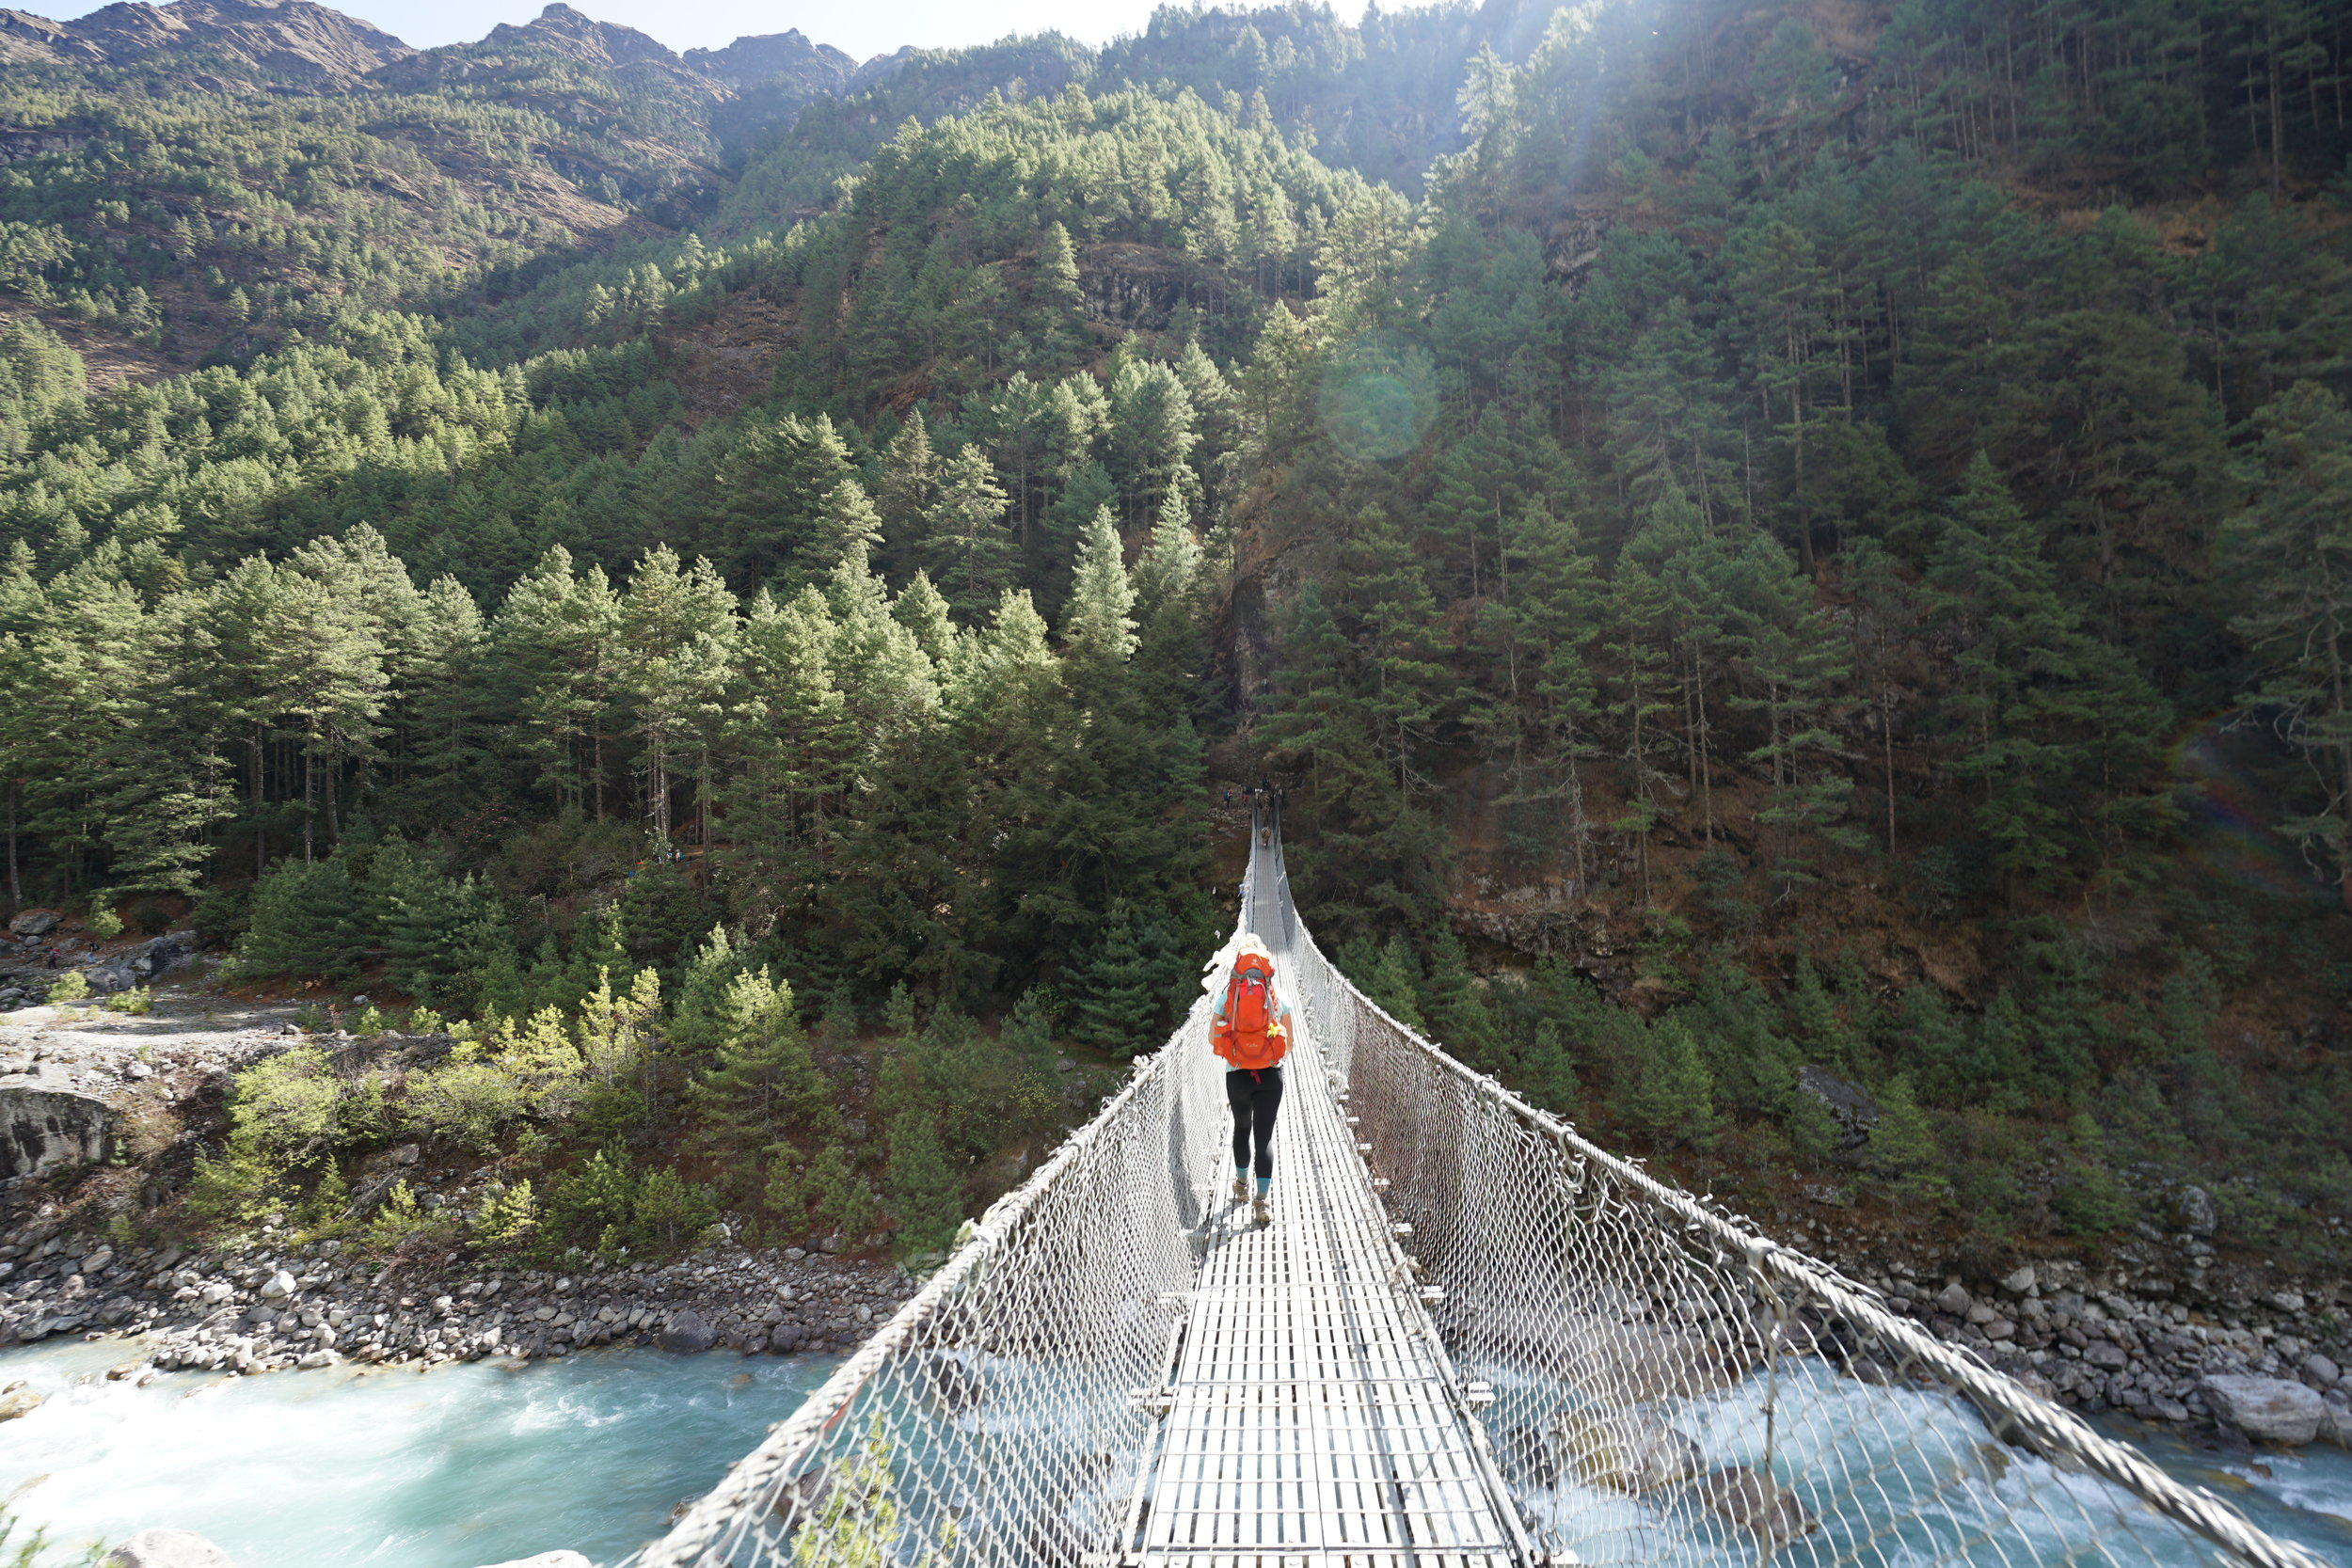 One of many wire rope bridges in Nepal